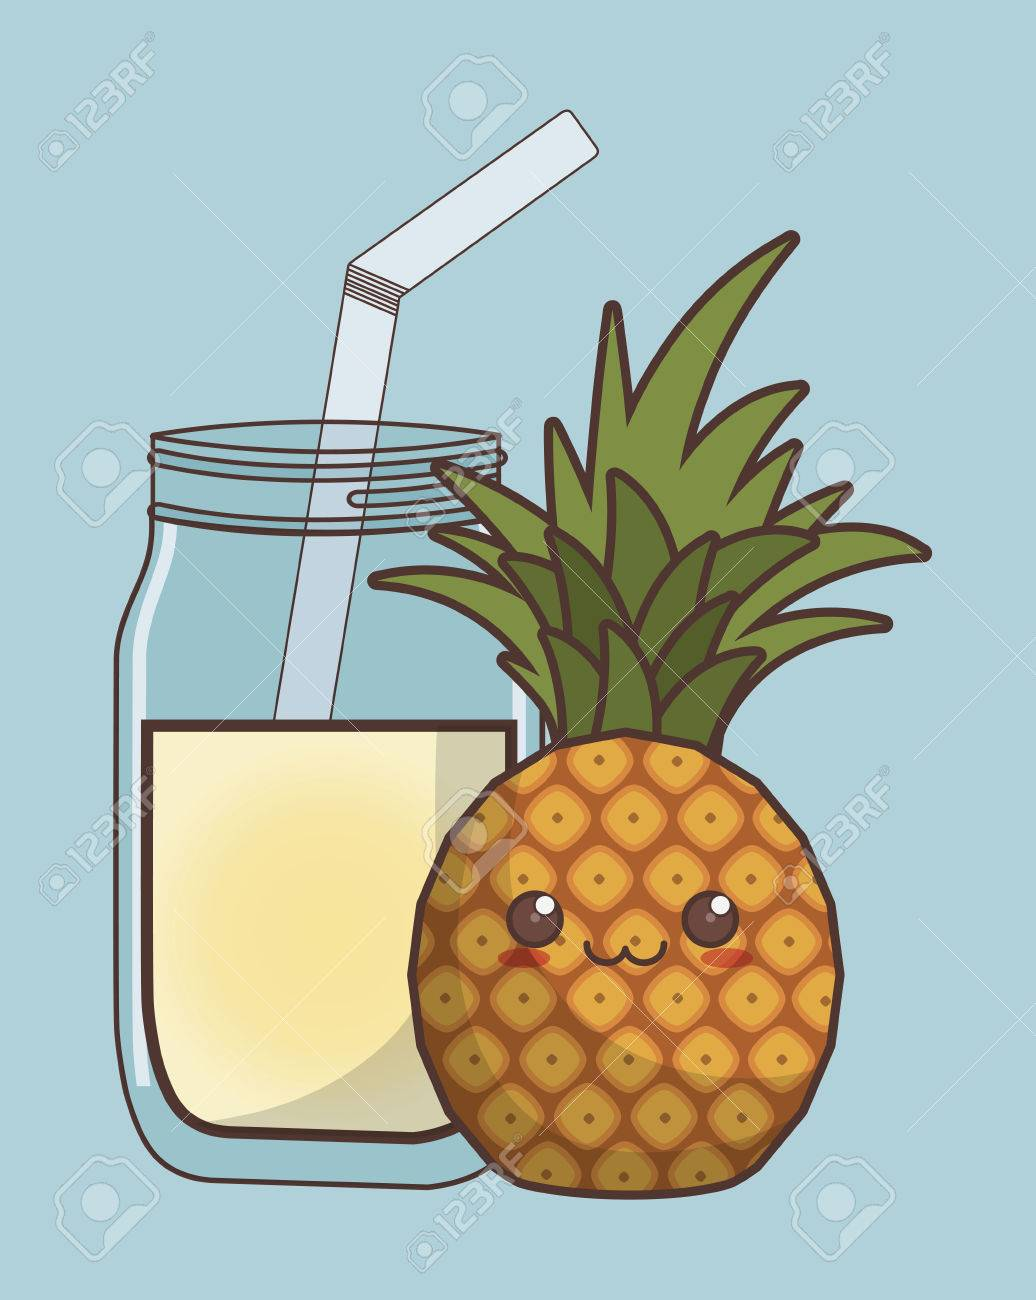 Kawaii Pineapple Fruit And Glass Of Juice Over Blue Background